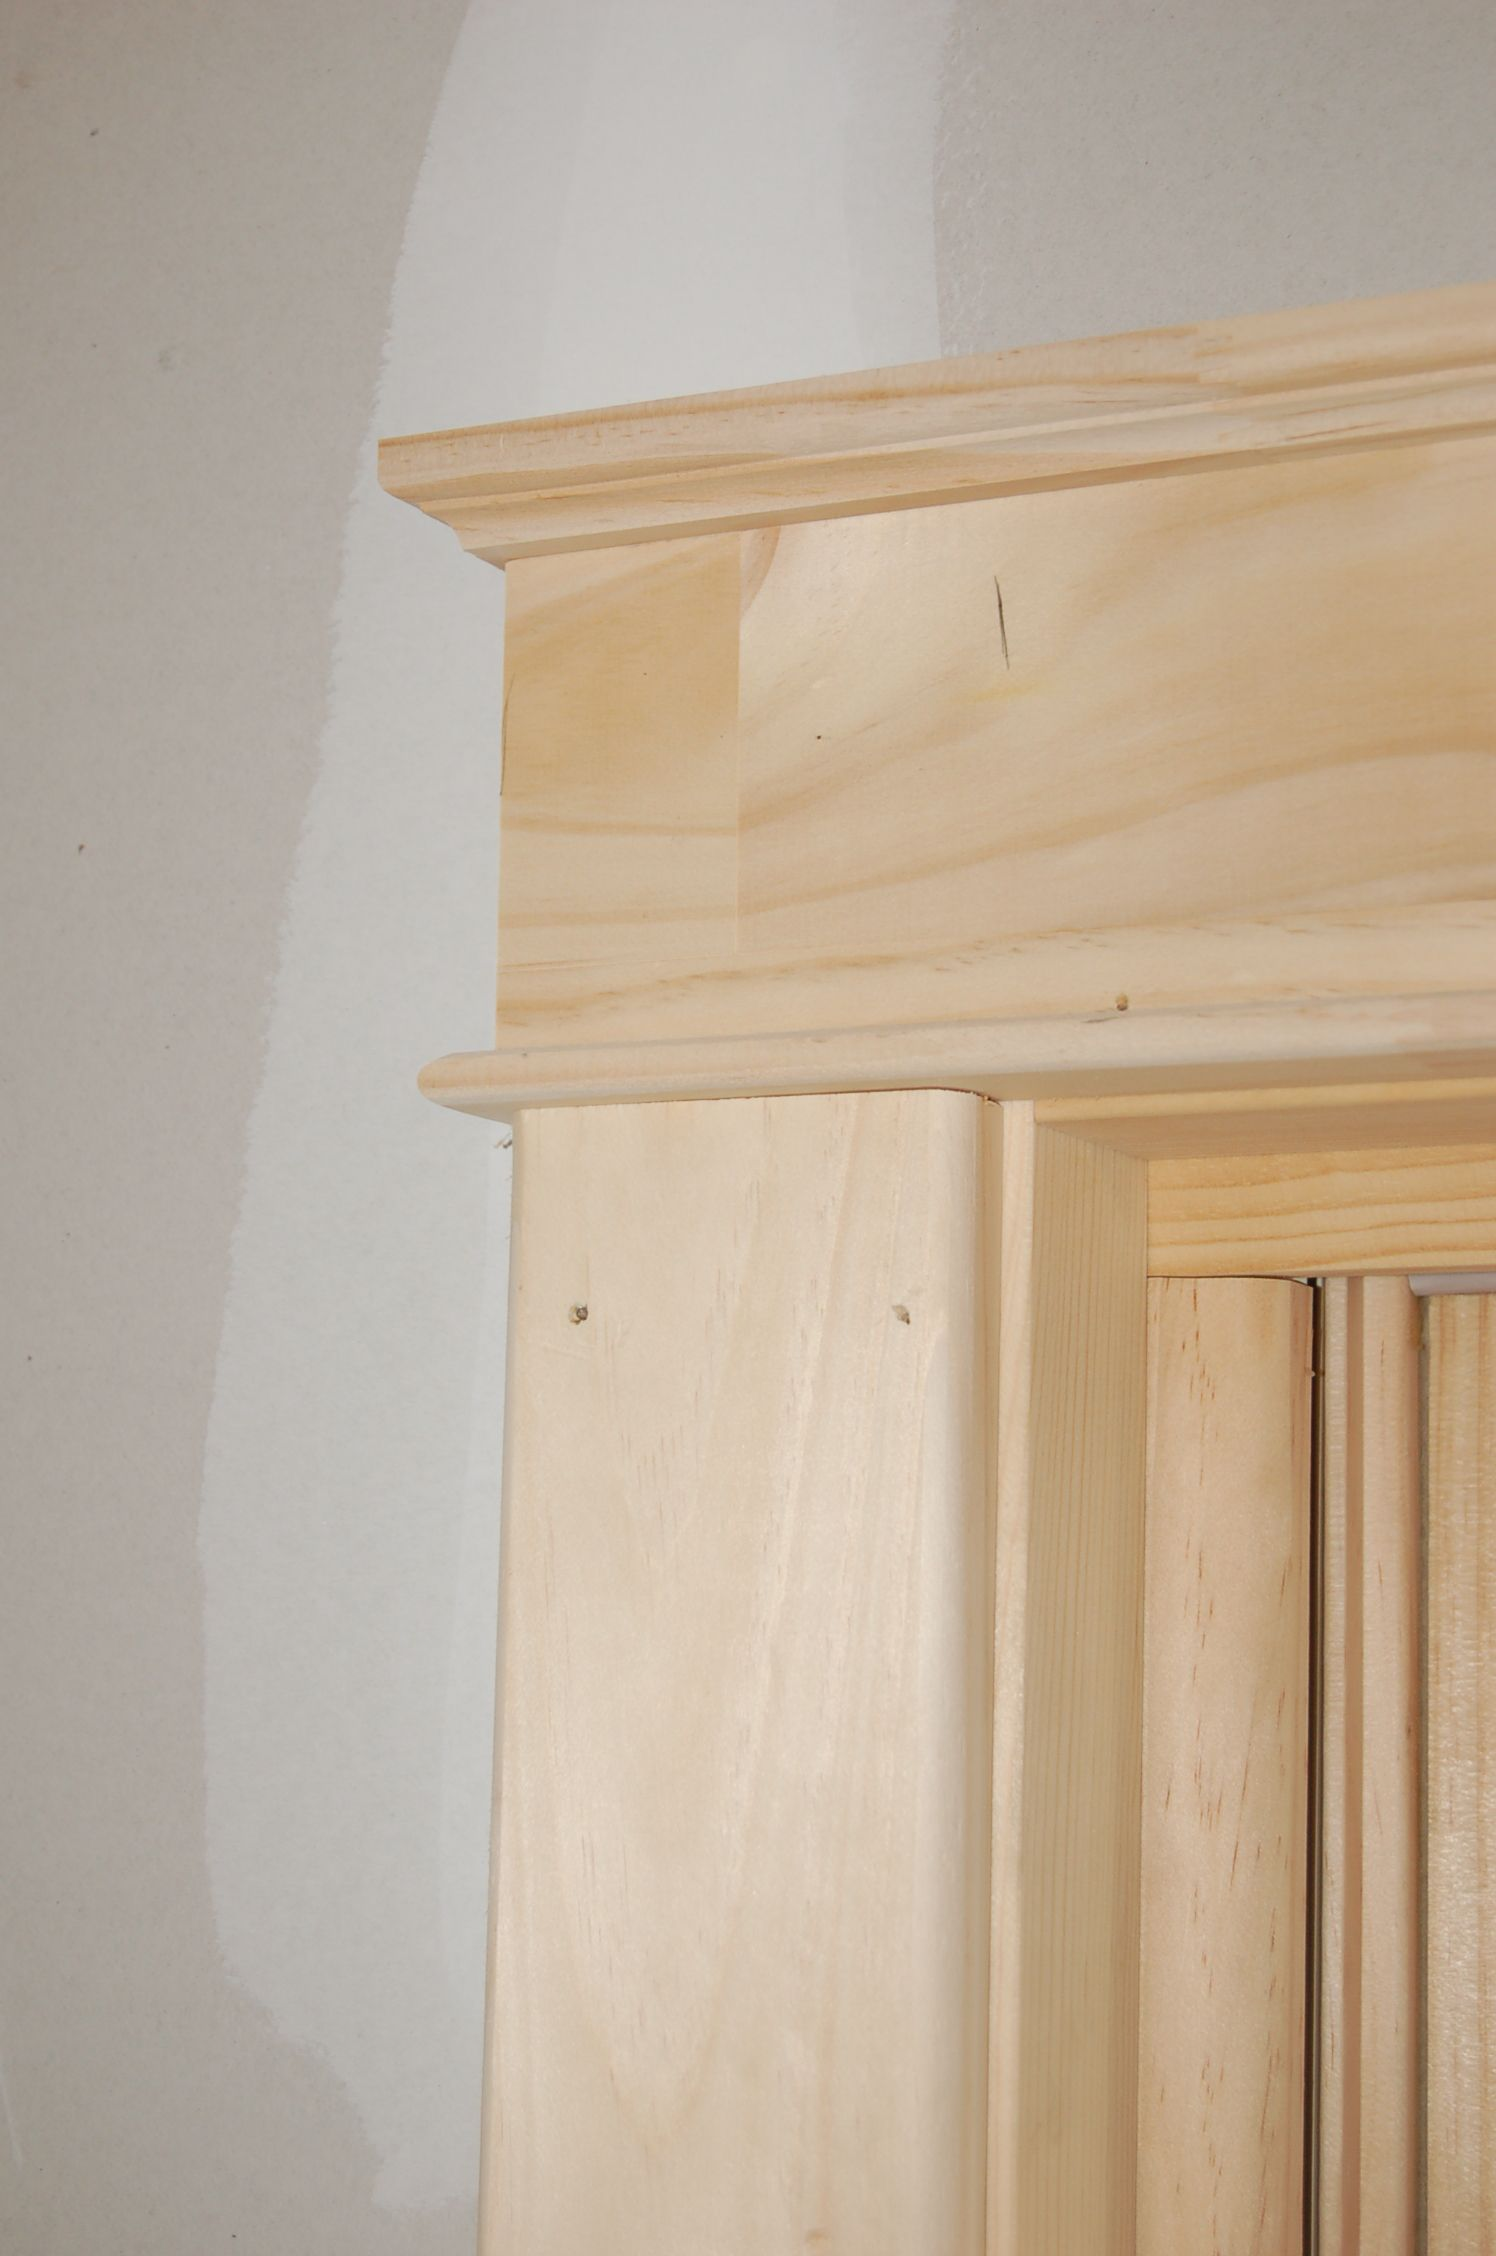 Revestimiento Techo Madera Window Trim Idea Painted White Of Course Suelos